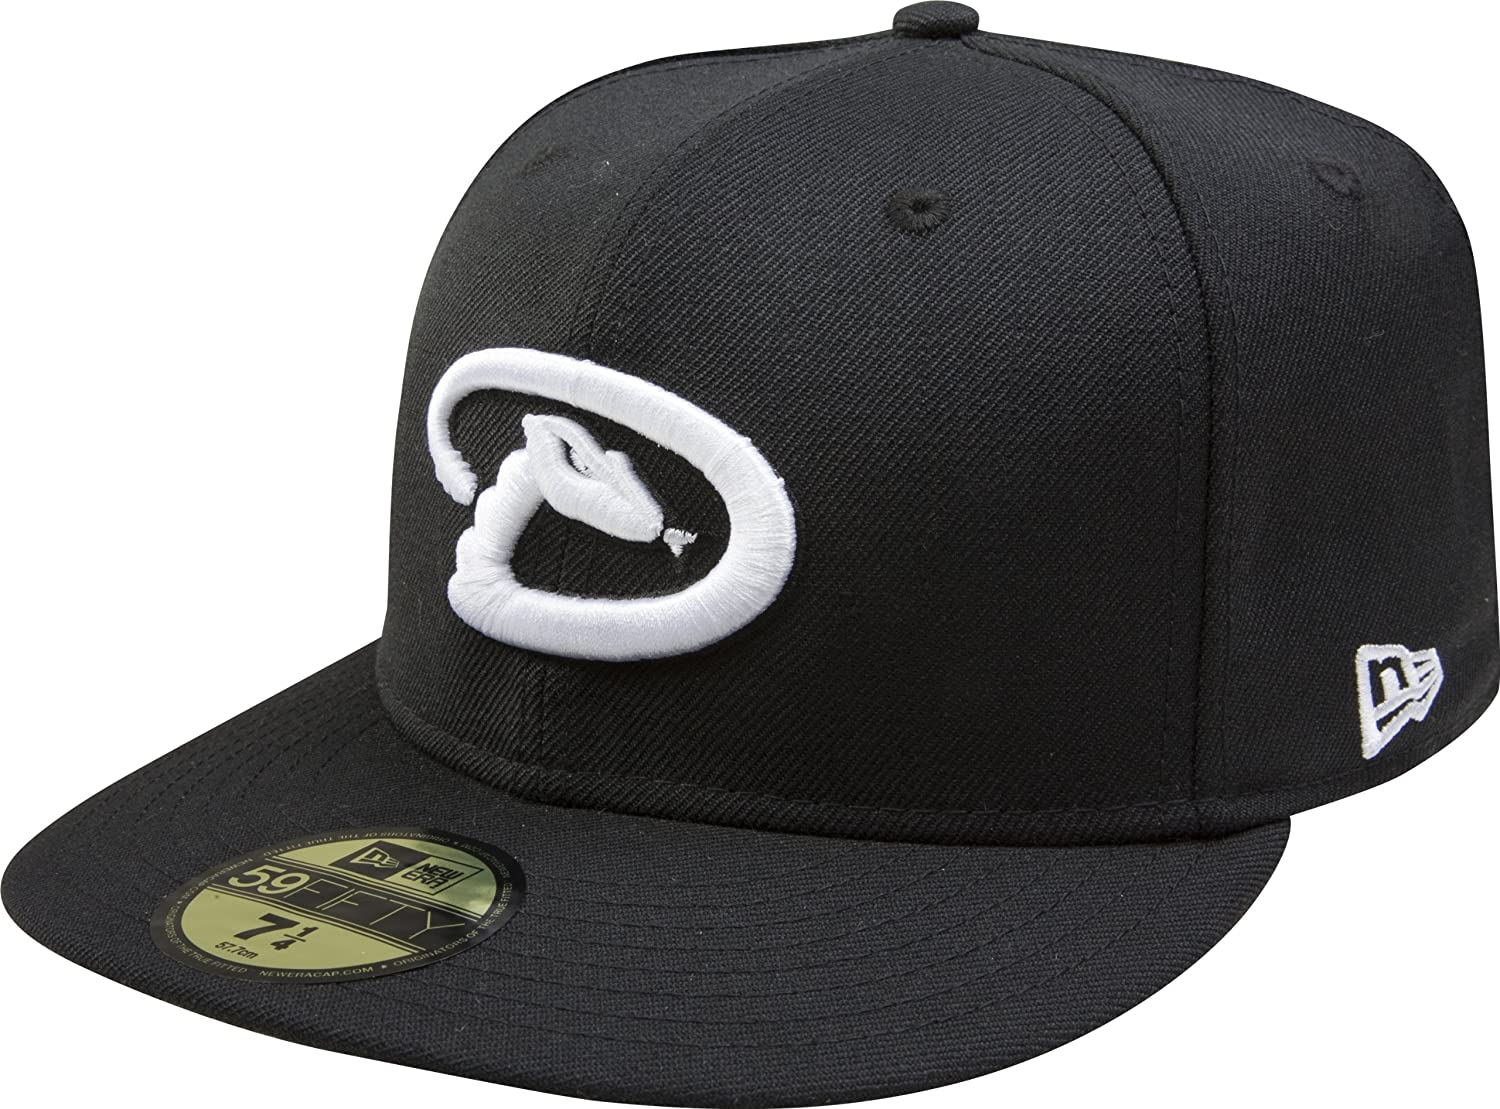 New Era MLB Black with Fitted Popular standard Cap 59FIFTY free shipping White